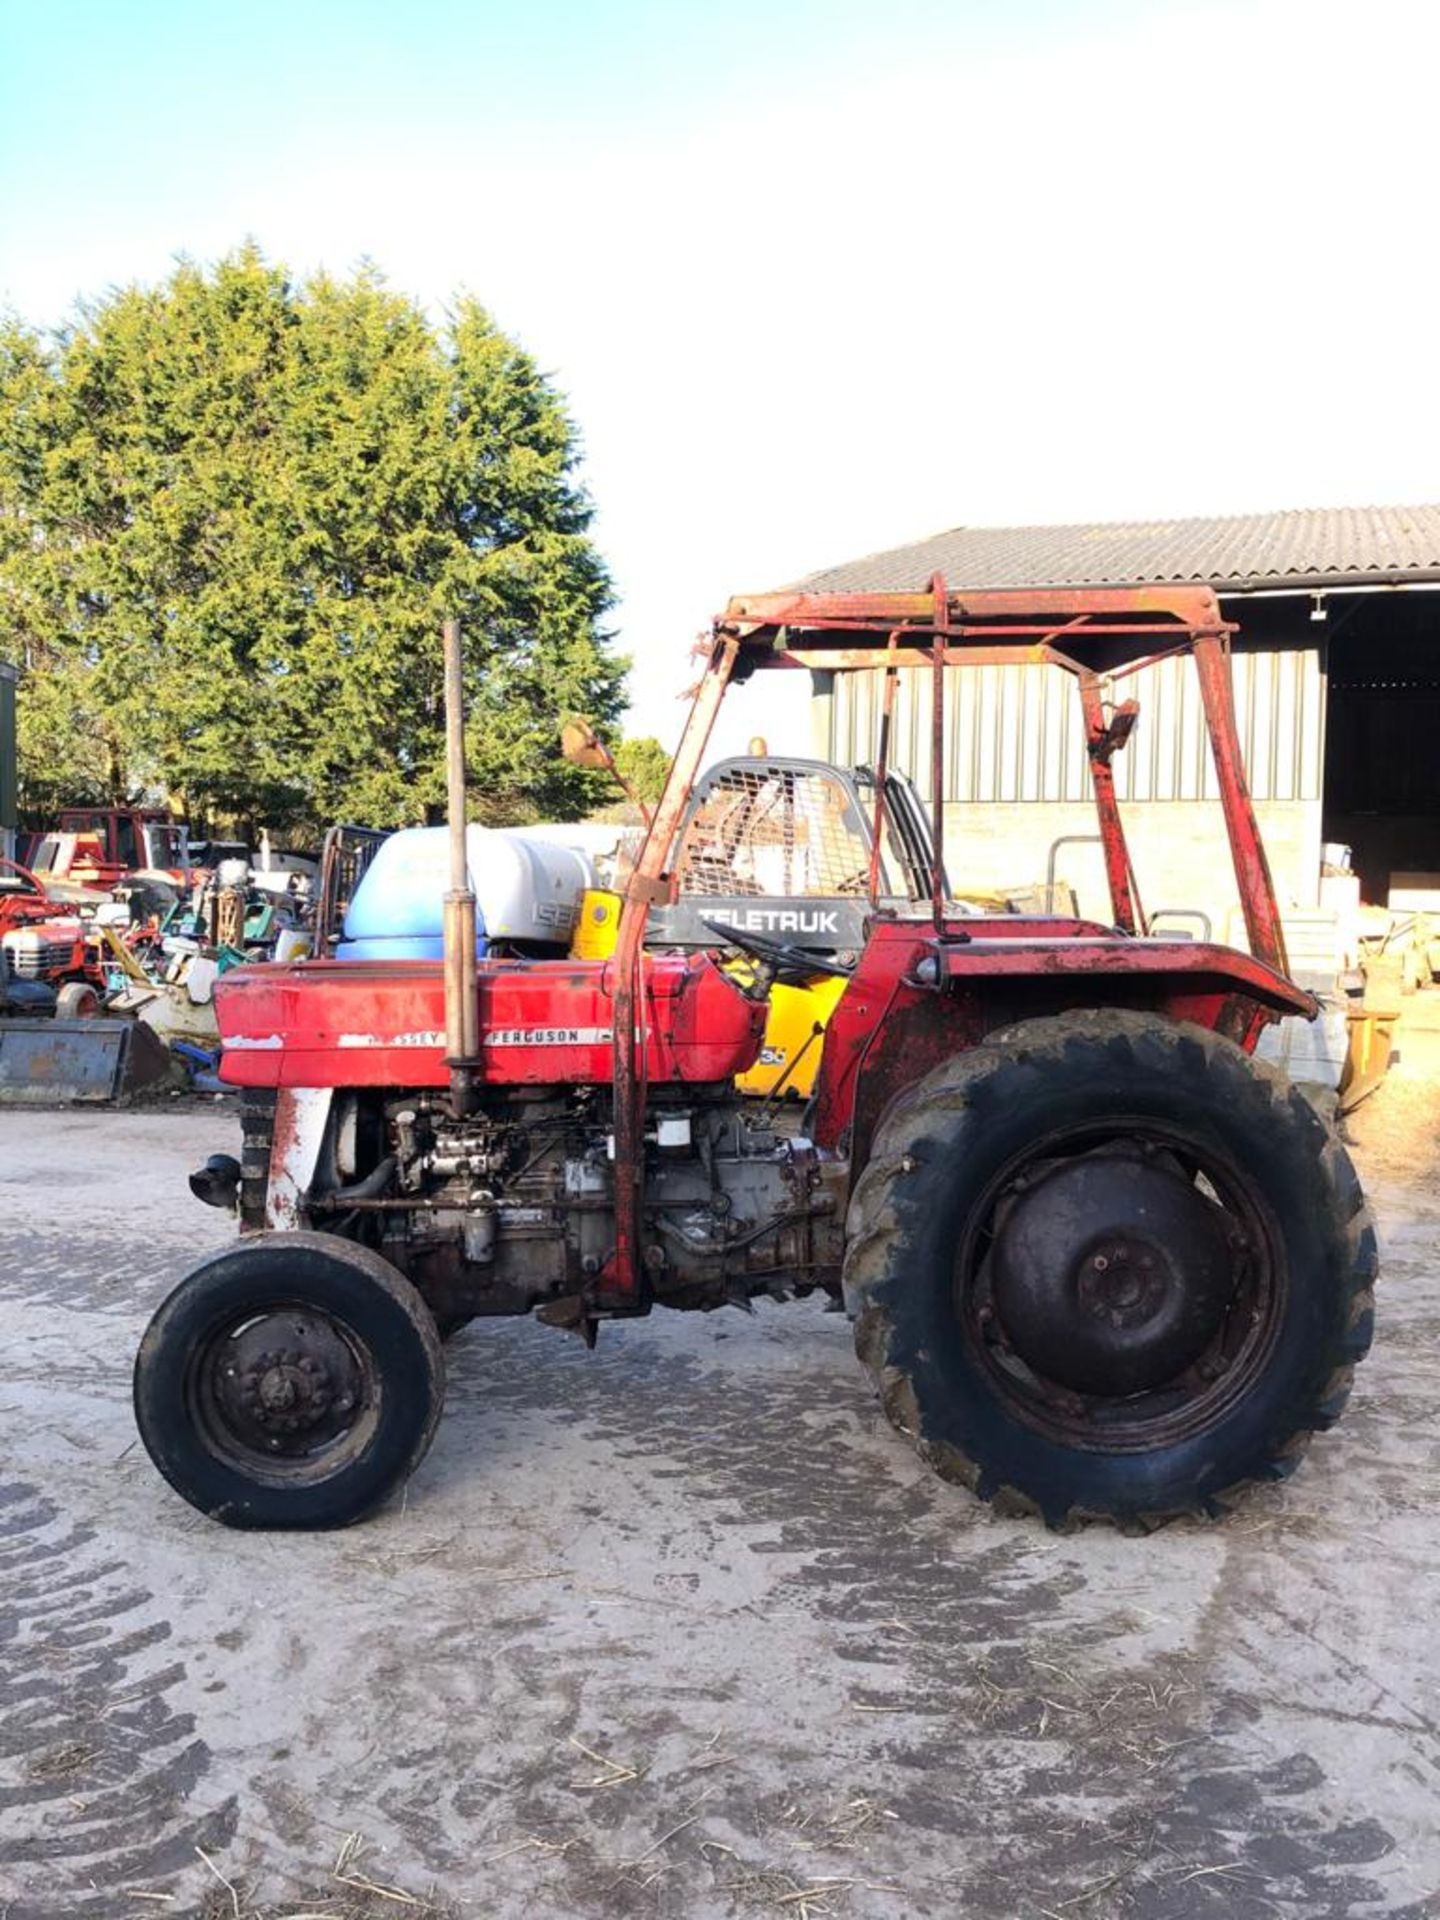 MASSEY FERGUSON 135 TRACTOR, RUNS AND WORKS WELL, REAR PTO, REAR 3 POINT LINKAGE *PLUS VAT* - Image 5 of 5